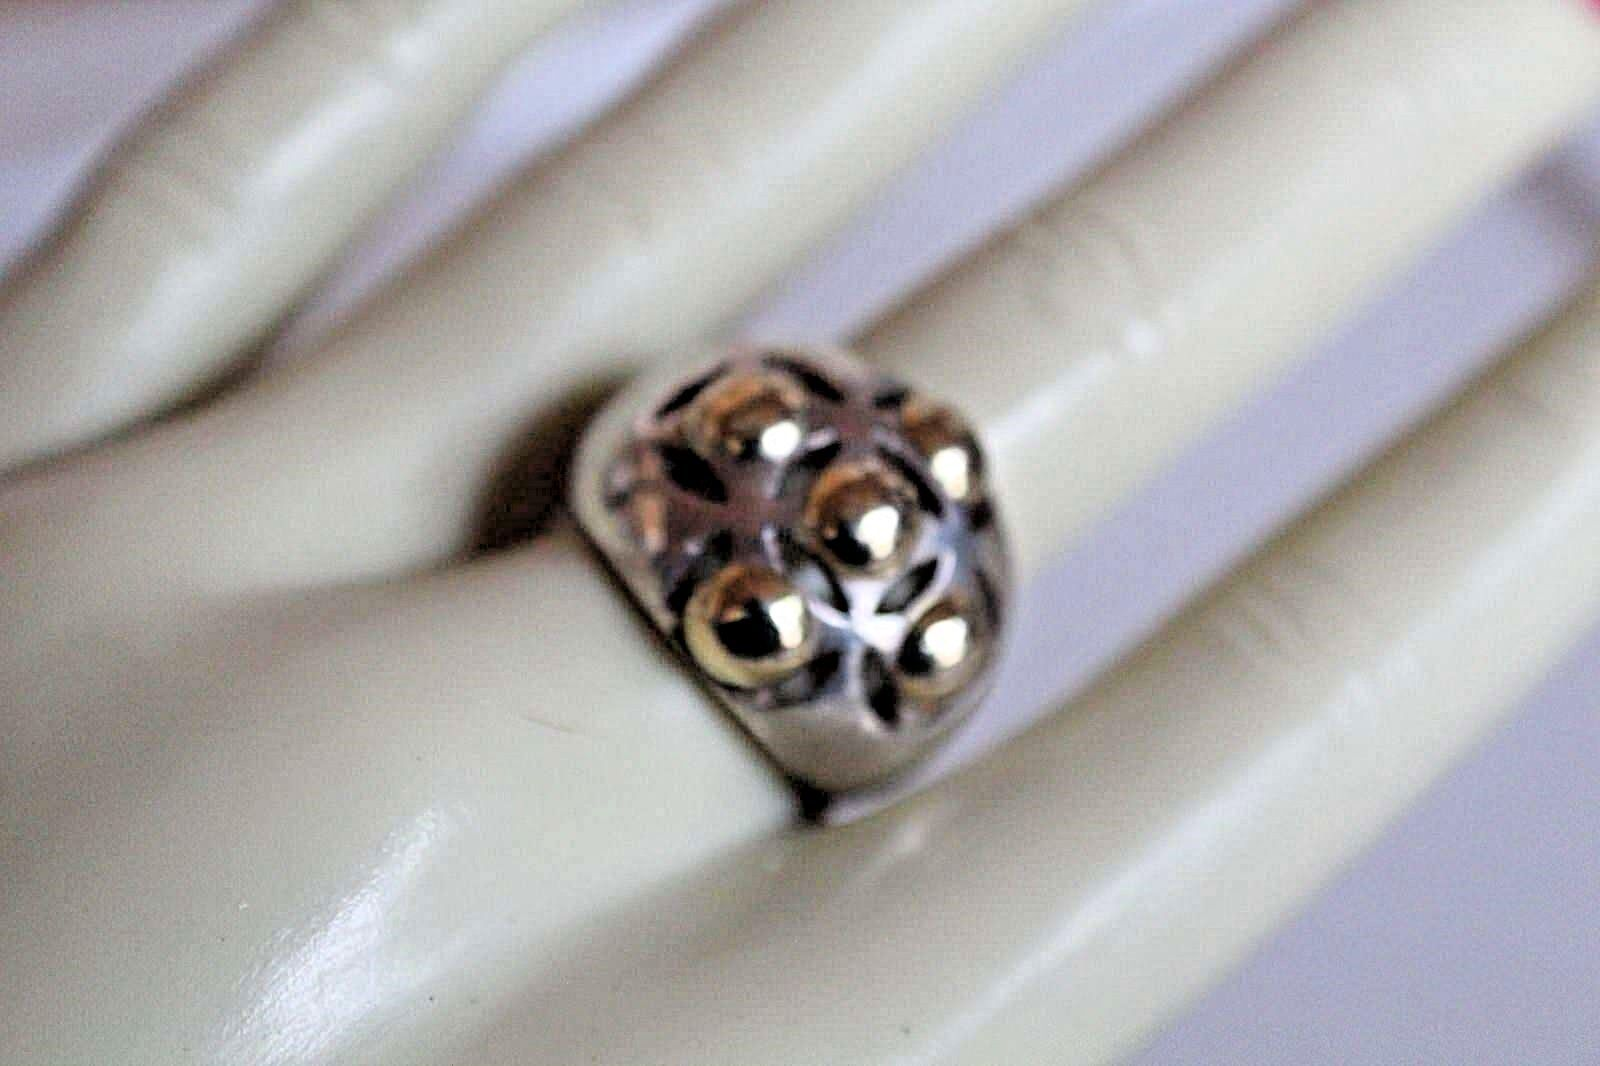 924 & 14K YELLOW gold DOTTED DOME RING SIZE 8.5